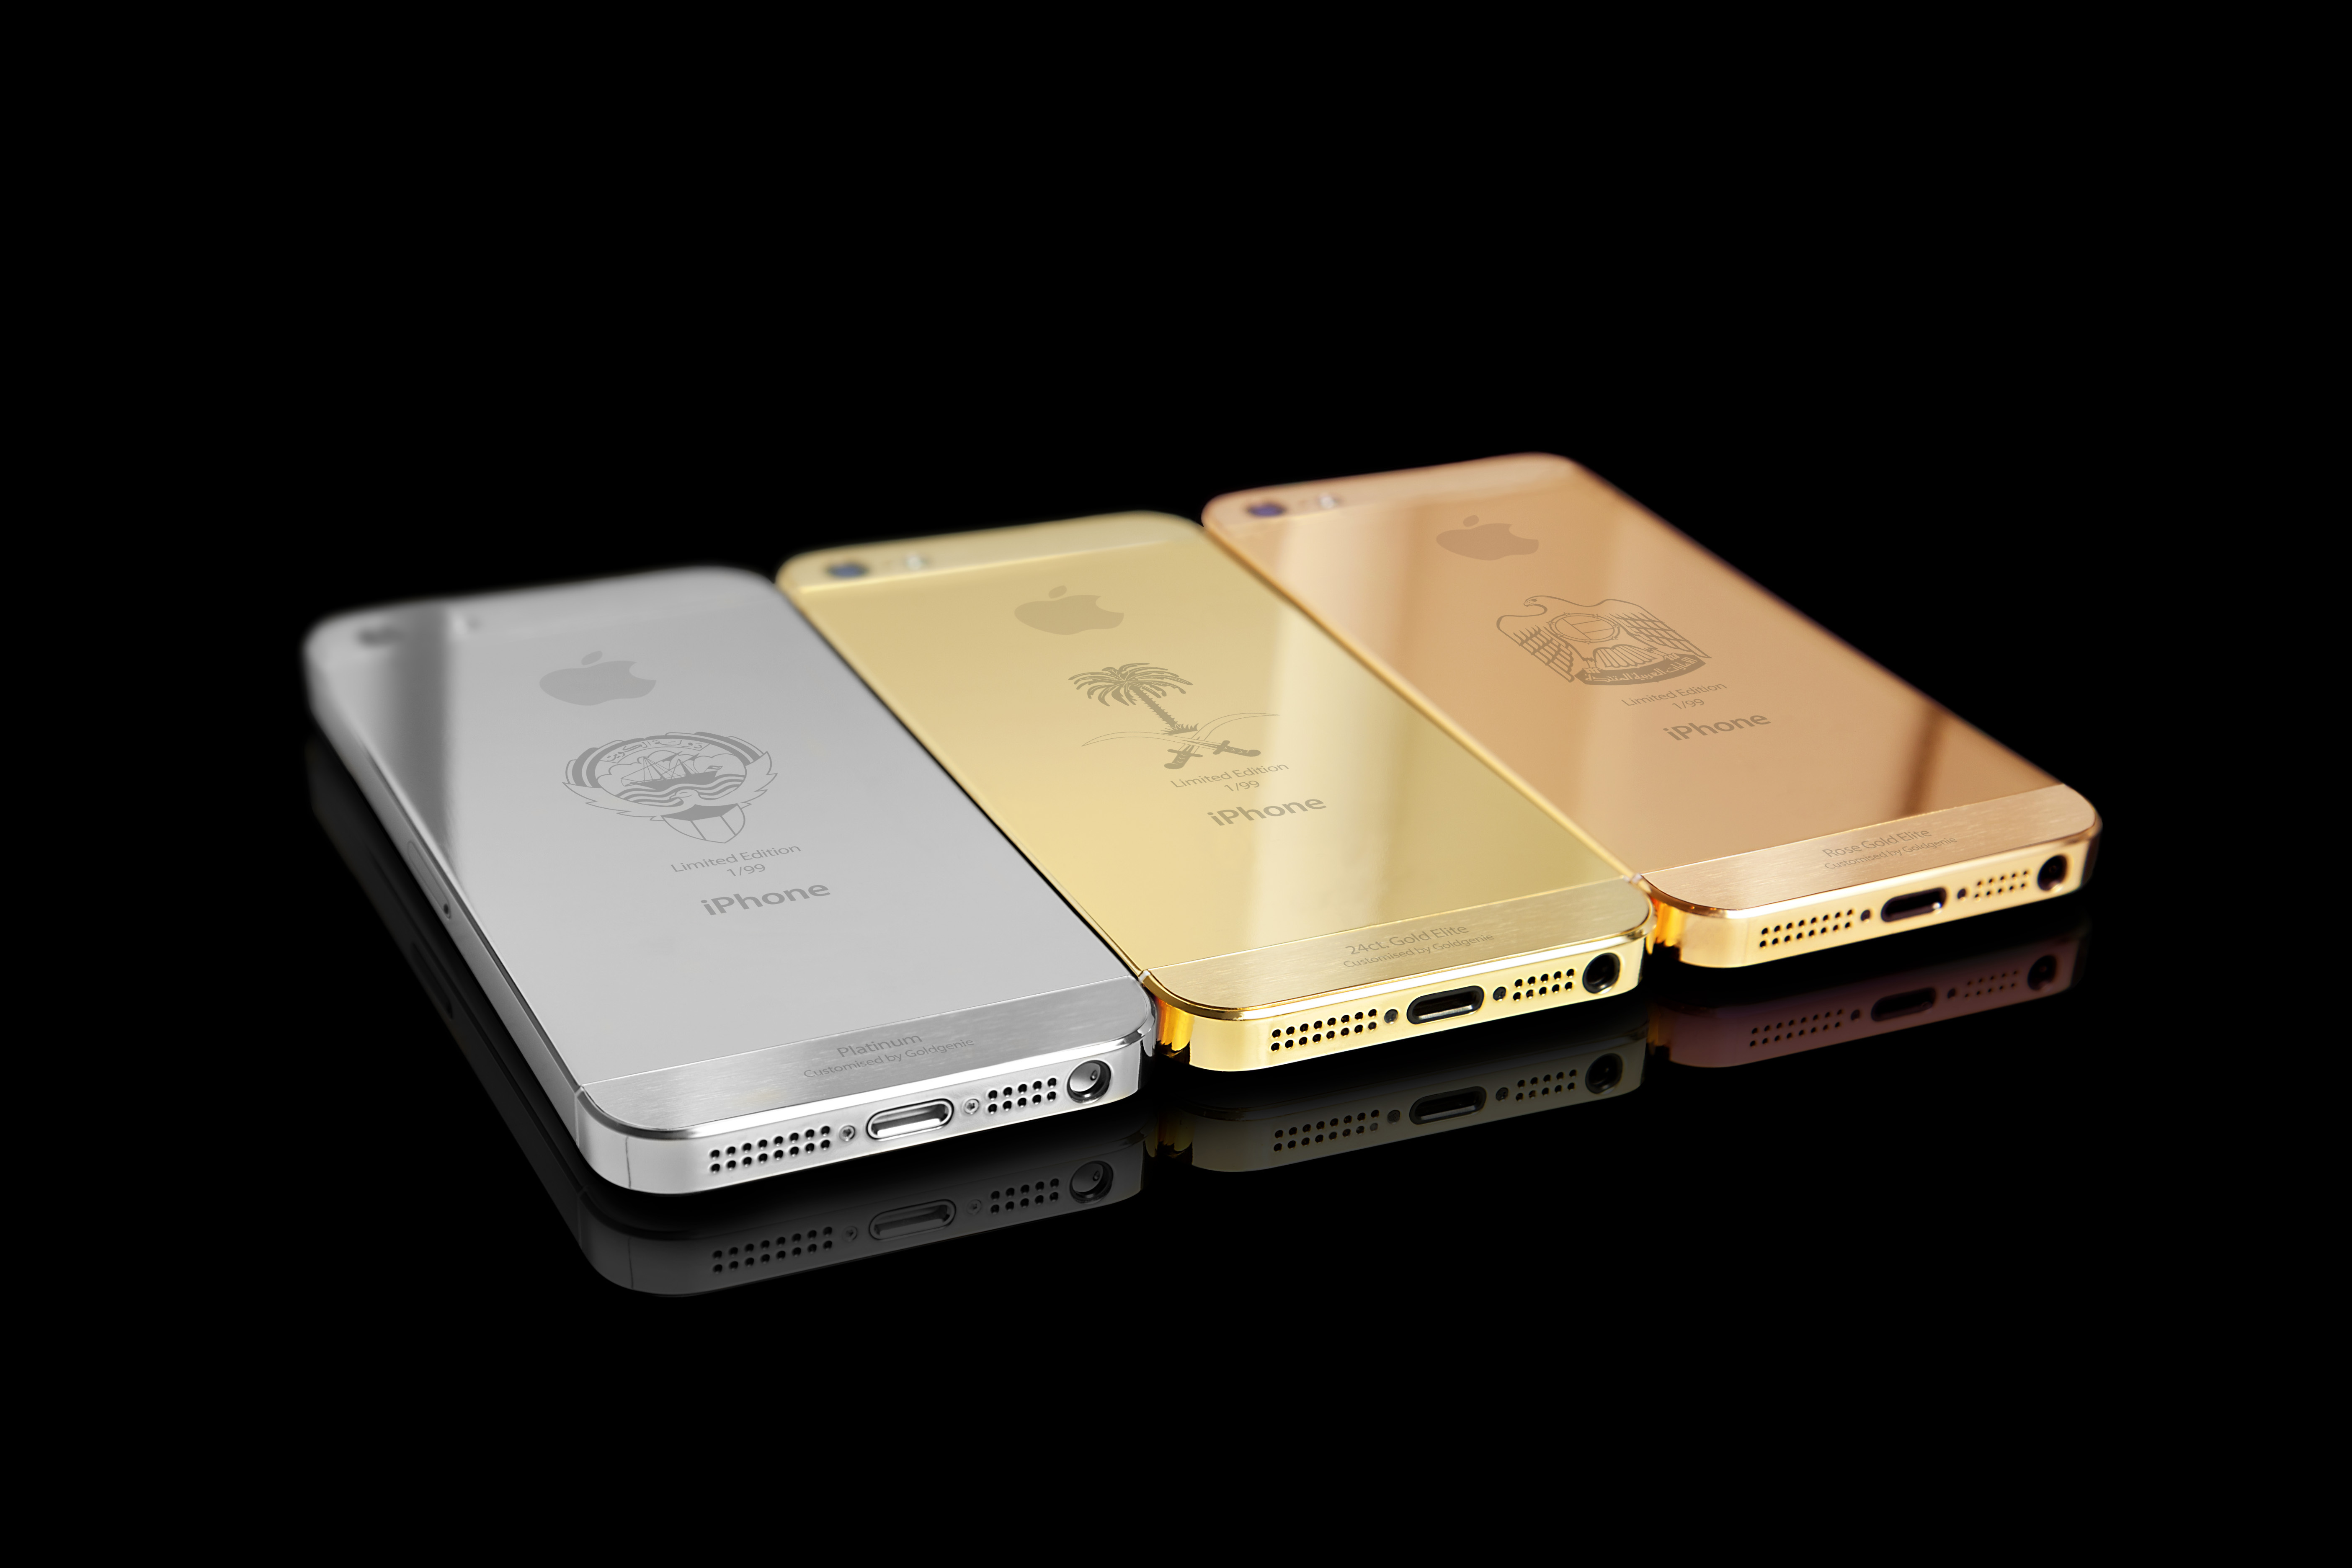 Limited Edition 24ct. Gold, Rose Gold and Platinum iPhone 5s range for the Gulf States created by Goldgenie. (Photo: Business Wire)